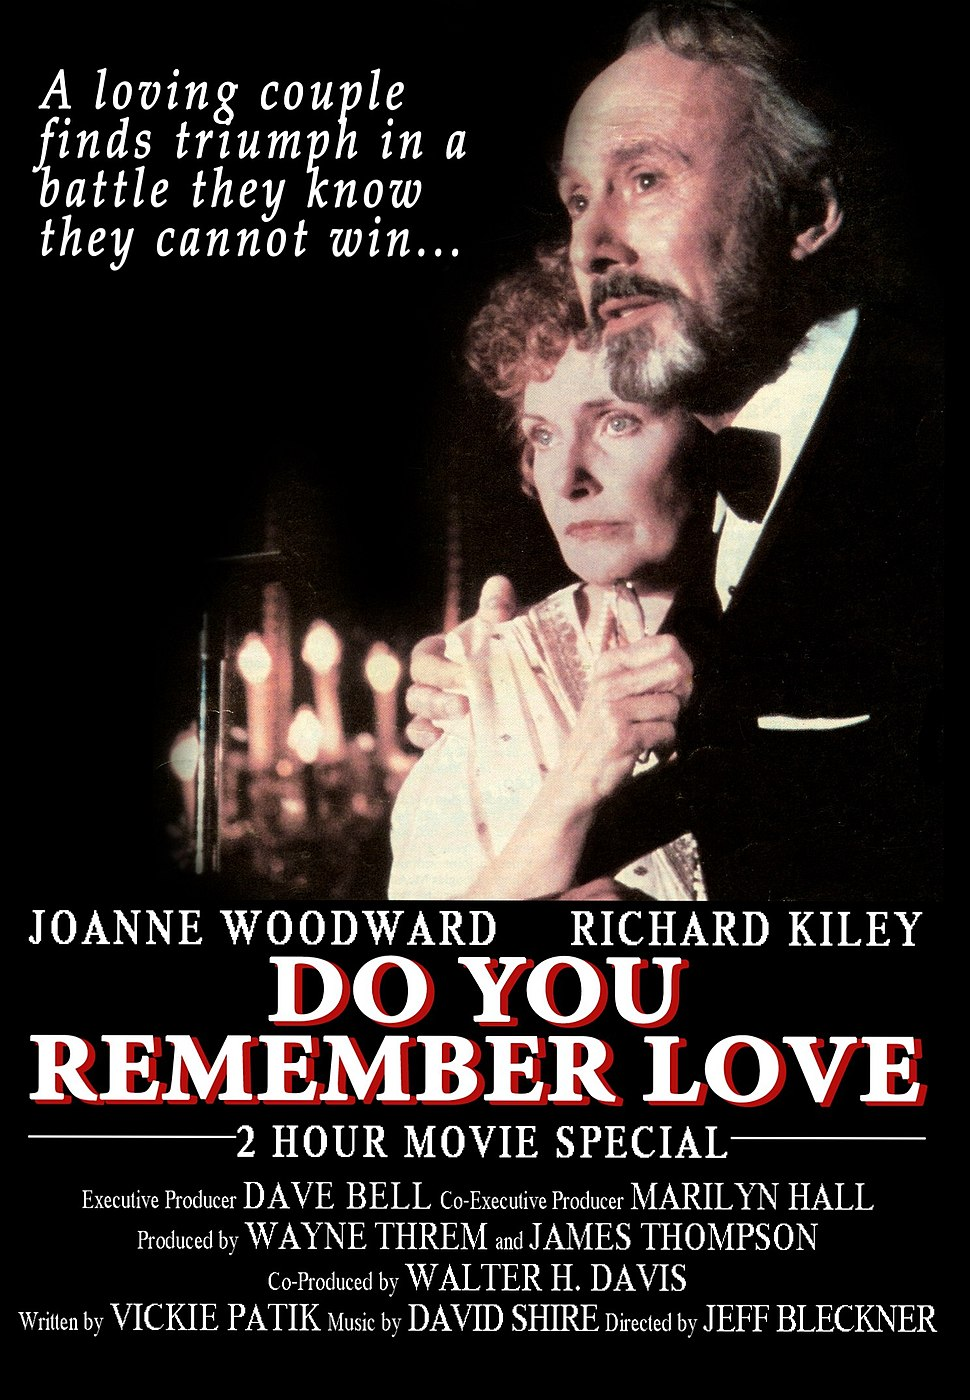 Do You Remember Love film poster